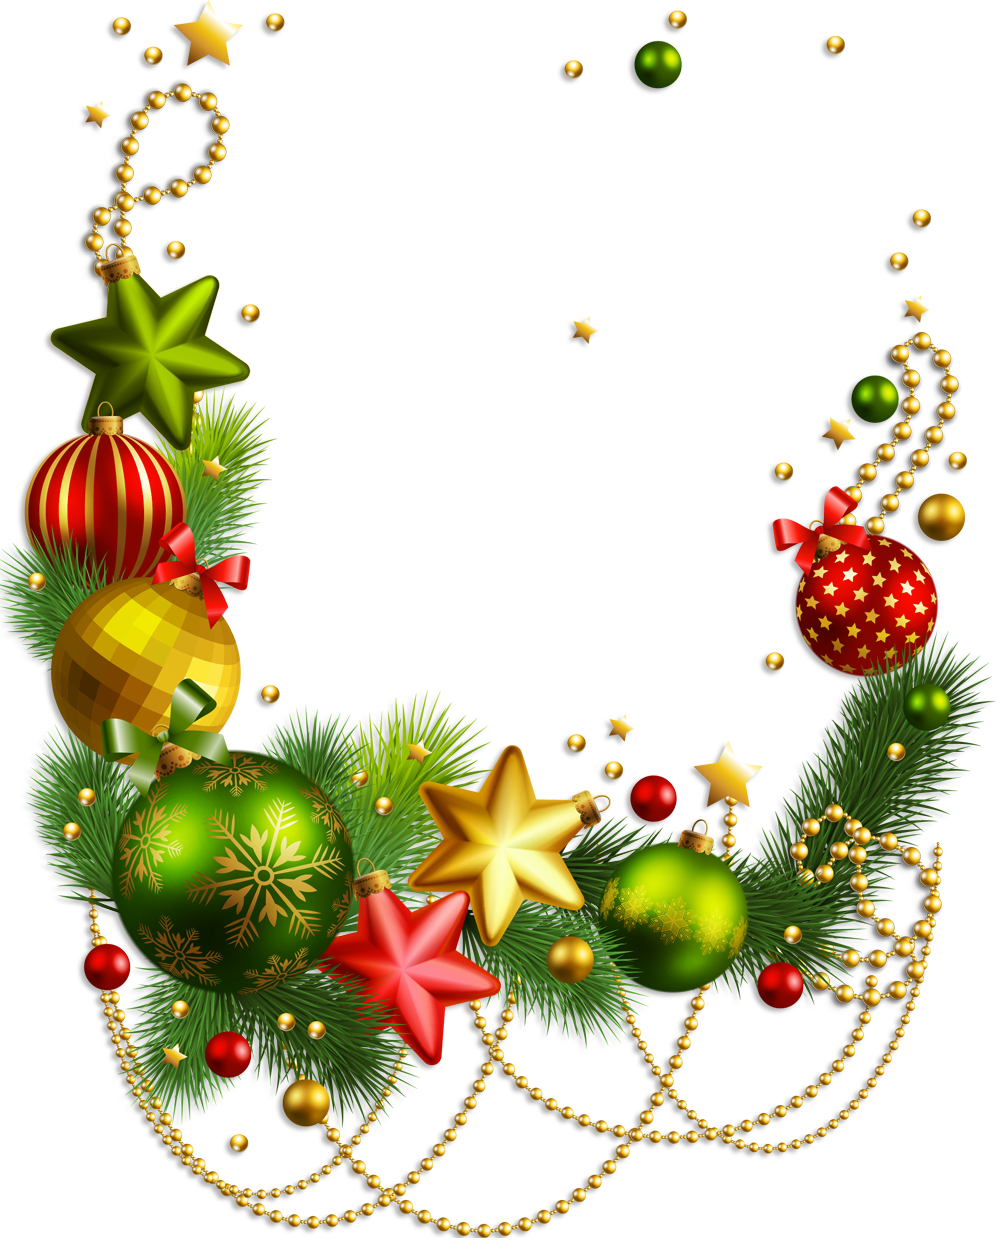 Christmas ornament border png. Collection of ornaments